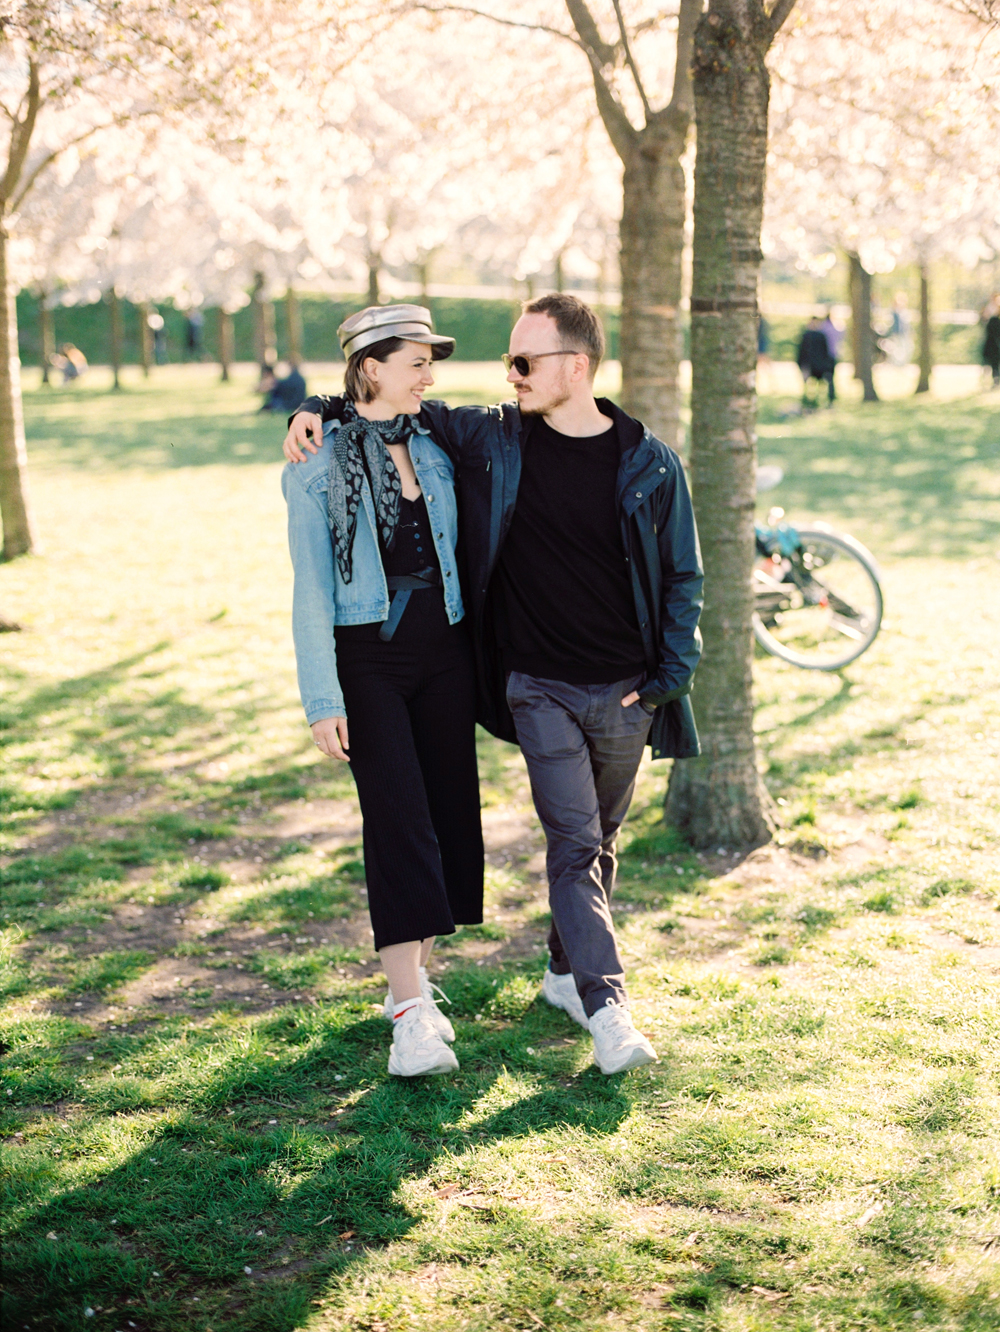 Engagement and Wedding Photo Session in Copenhagen | Film Fuji 400H, Mamiya 645 | Love spring Denmark